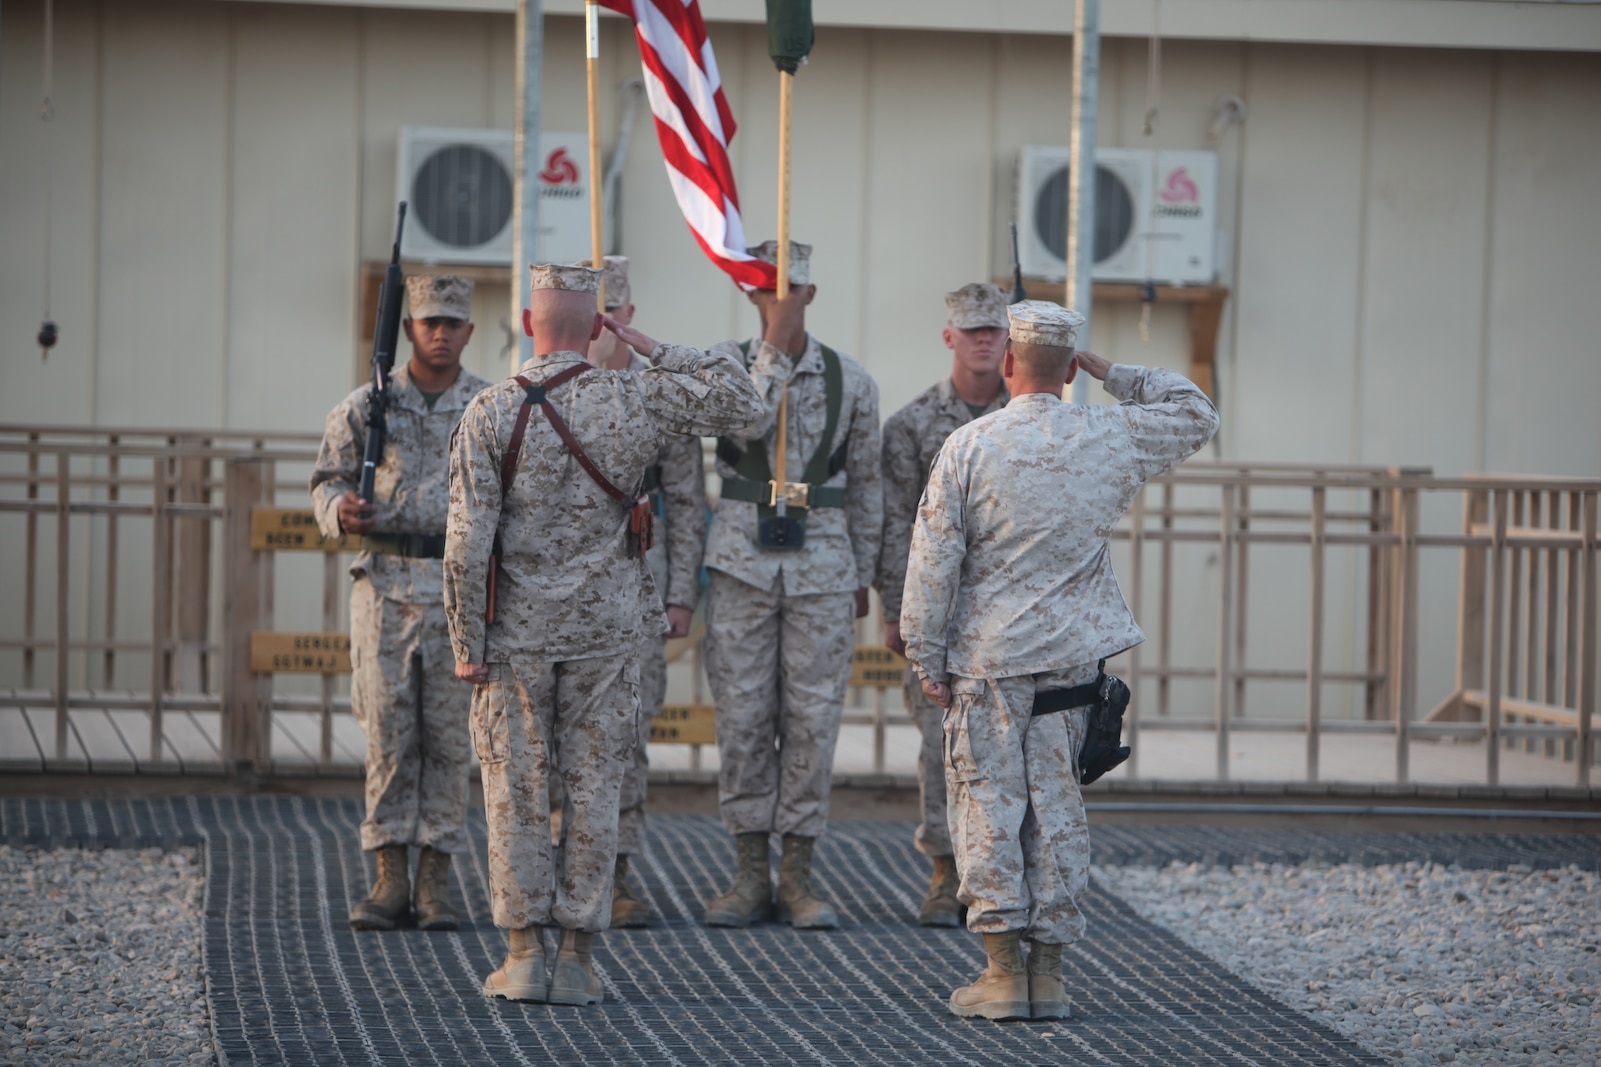 Col. Stephen D. Sklenka (right), commanding officer of Combat Logistics Regiment-15 and Sgt. Maj. William T. Sowers, CLR-15 sergeant major, salute the colors during a transfer of authority ceremony, Sept. 10. CLR-15 stands poised to provide the same range of logistics operations as its predecessor, ensuring the Marine Air-Ground Task Force remains mission-ready.